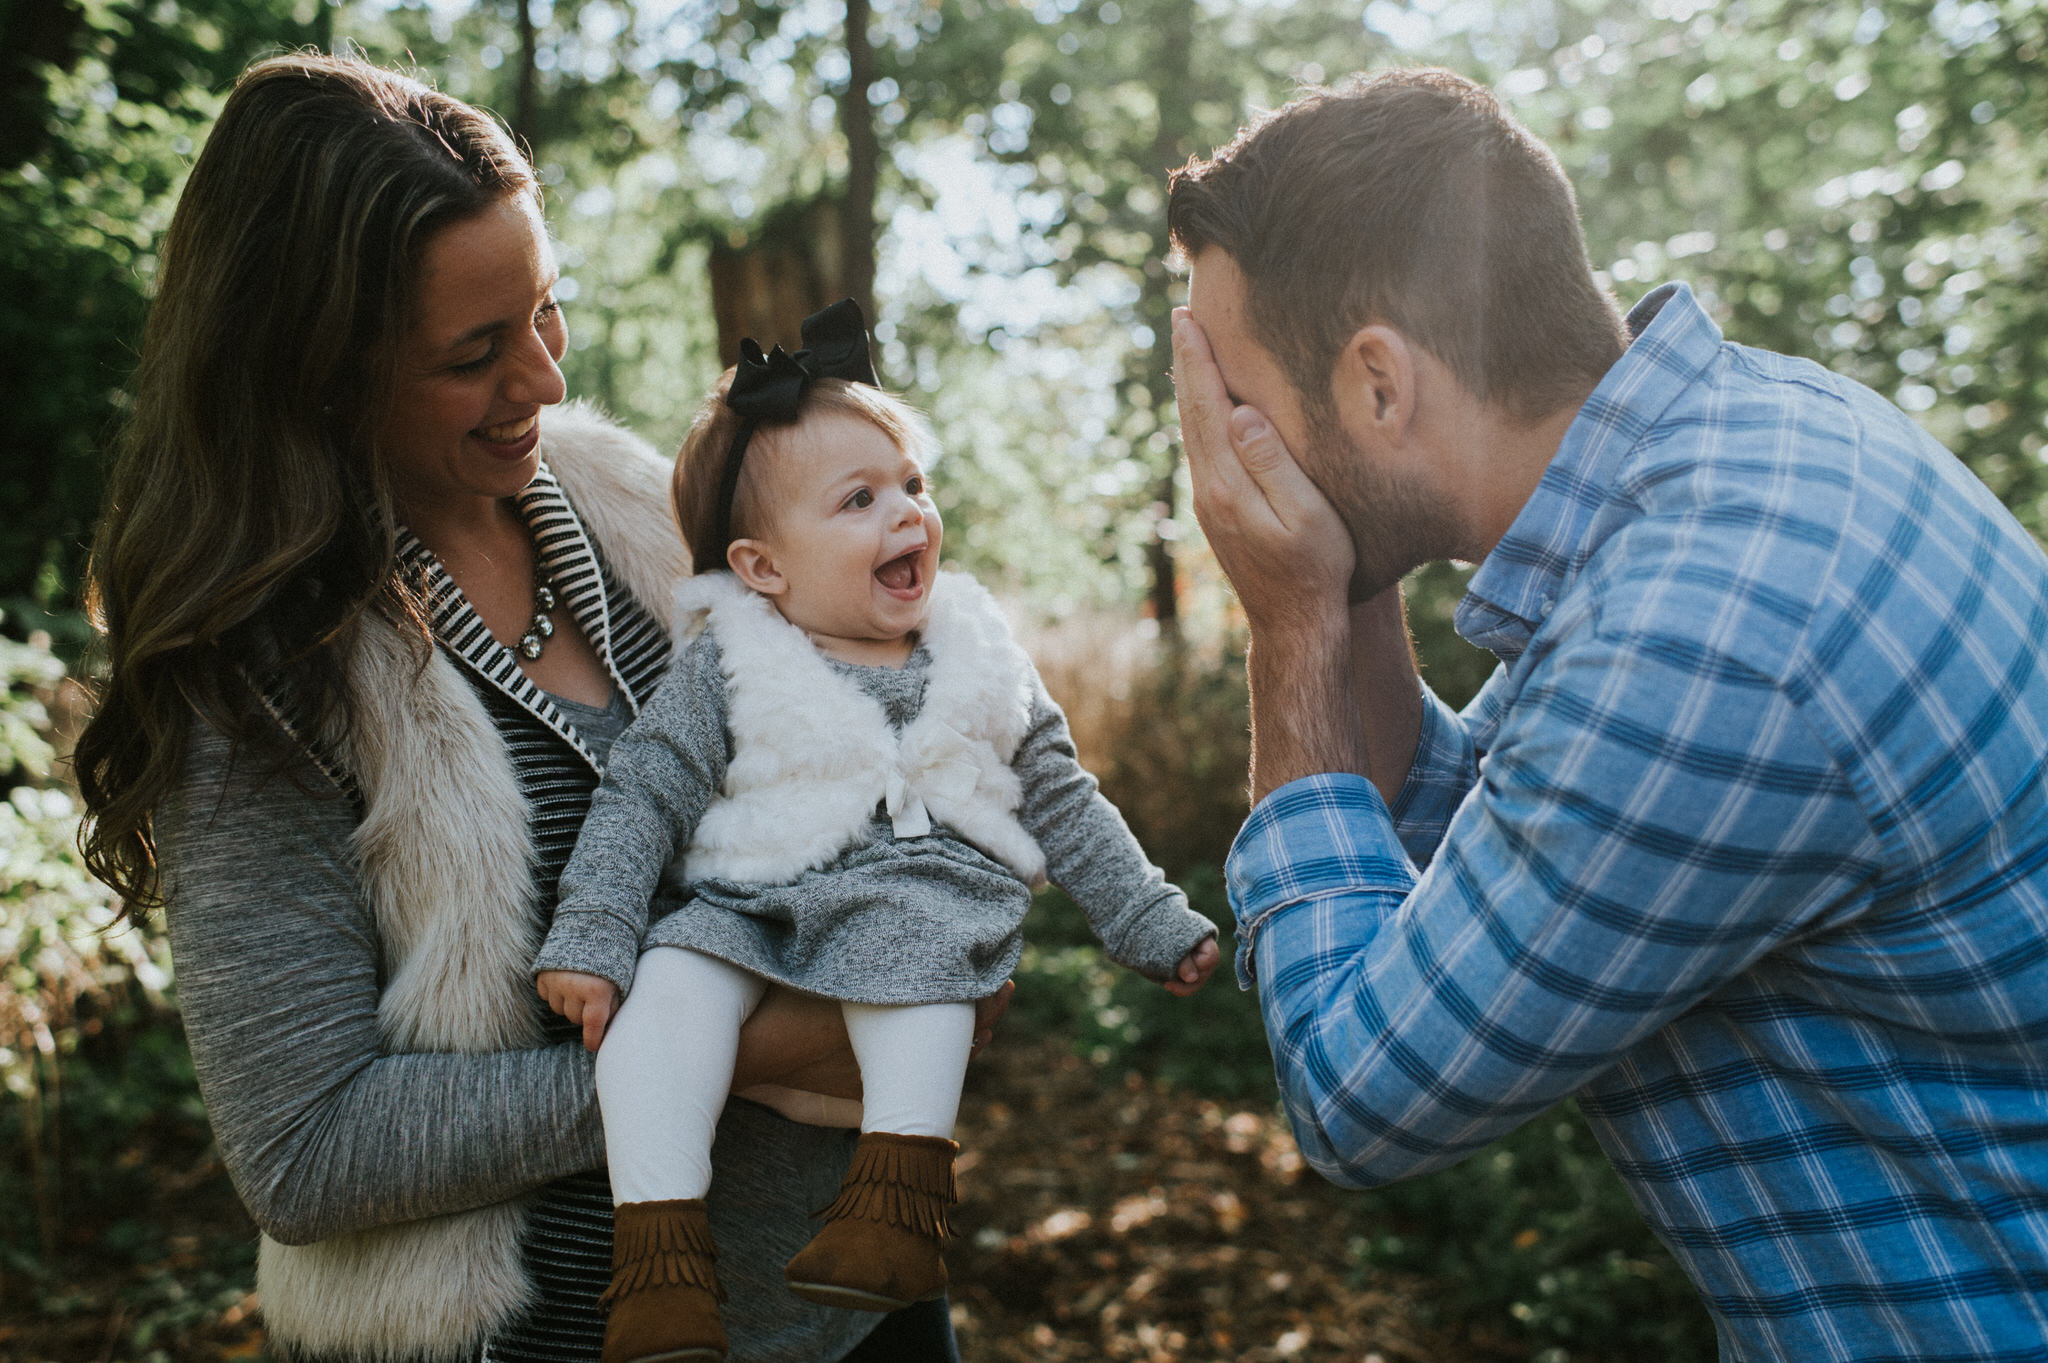 scarlet_oneill_family_sessions20.JPG